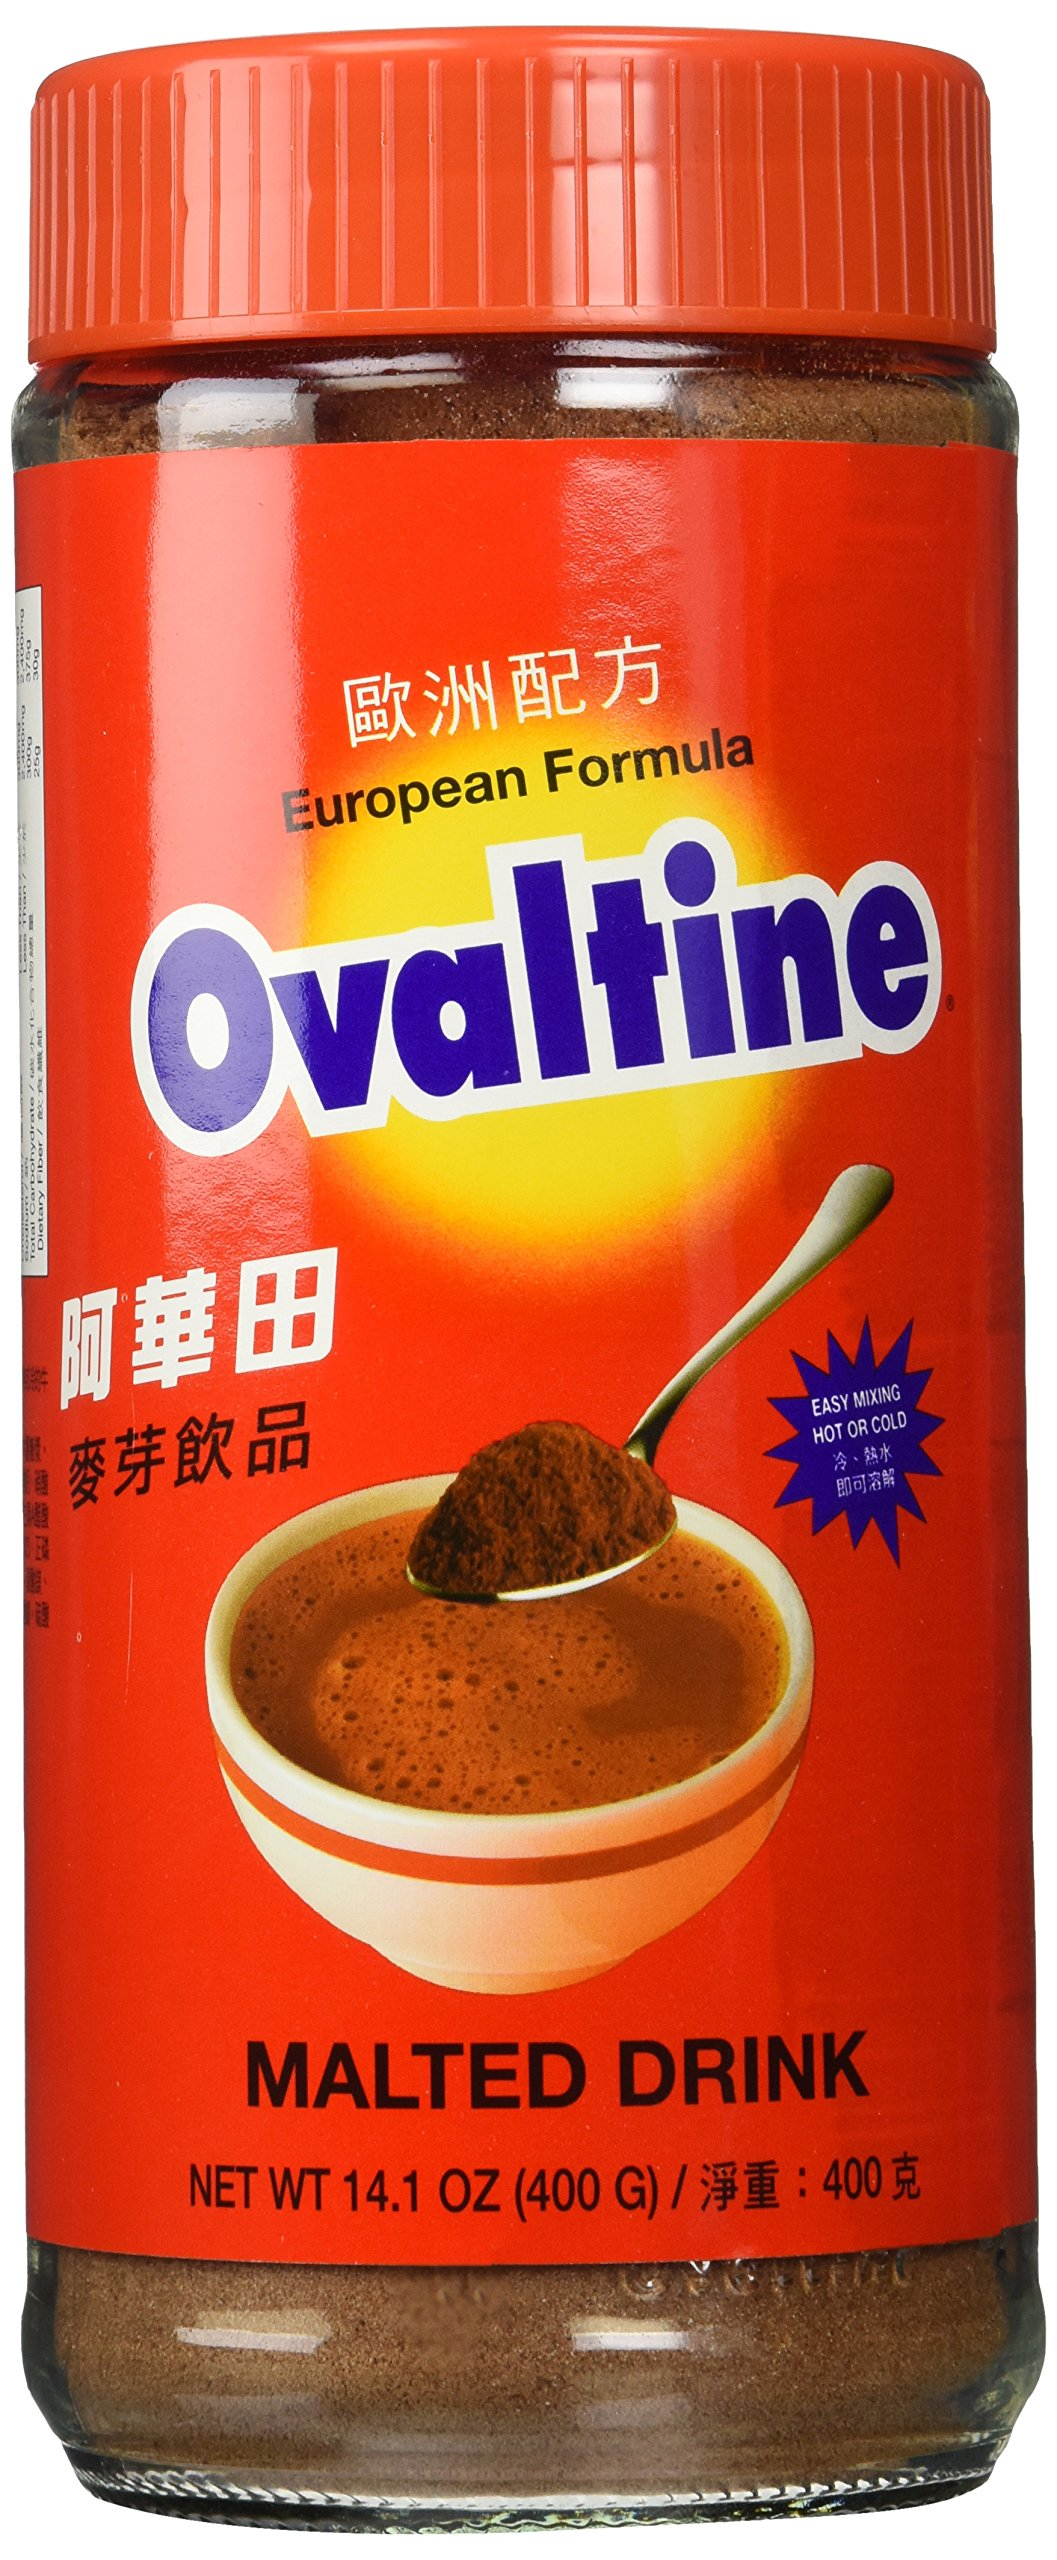 Ovaltine European Formula Malted Drink 14.1 Oz - 400g Bottle